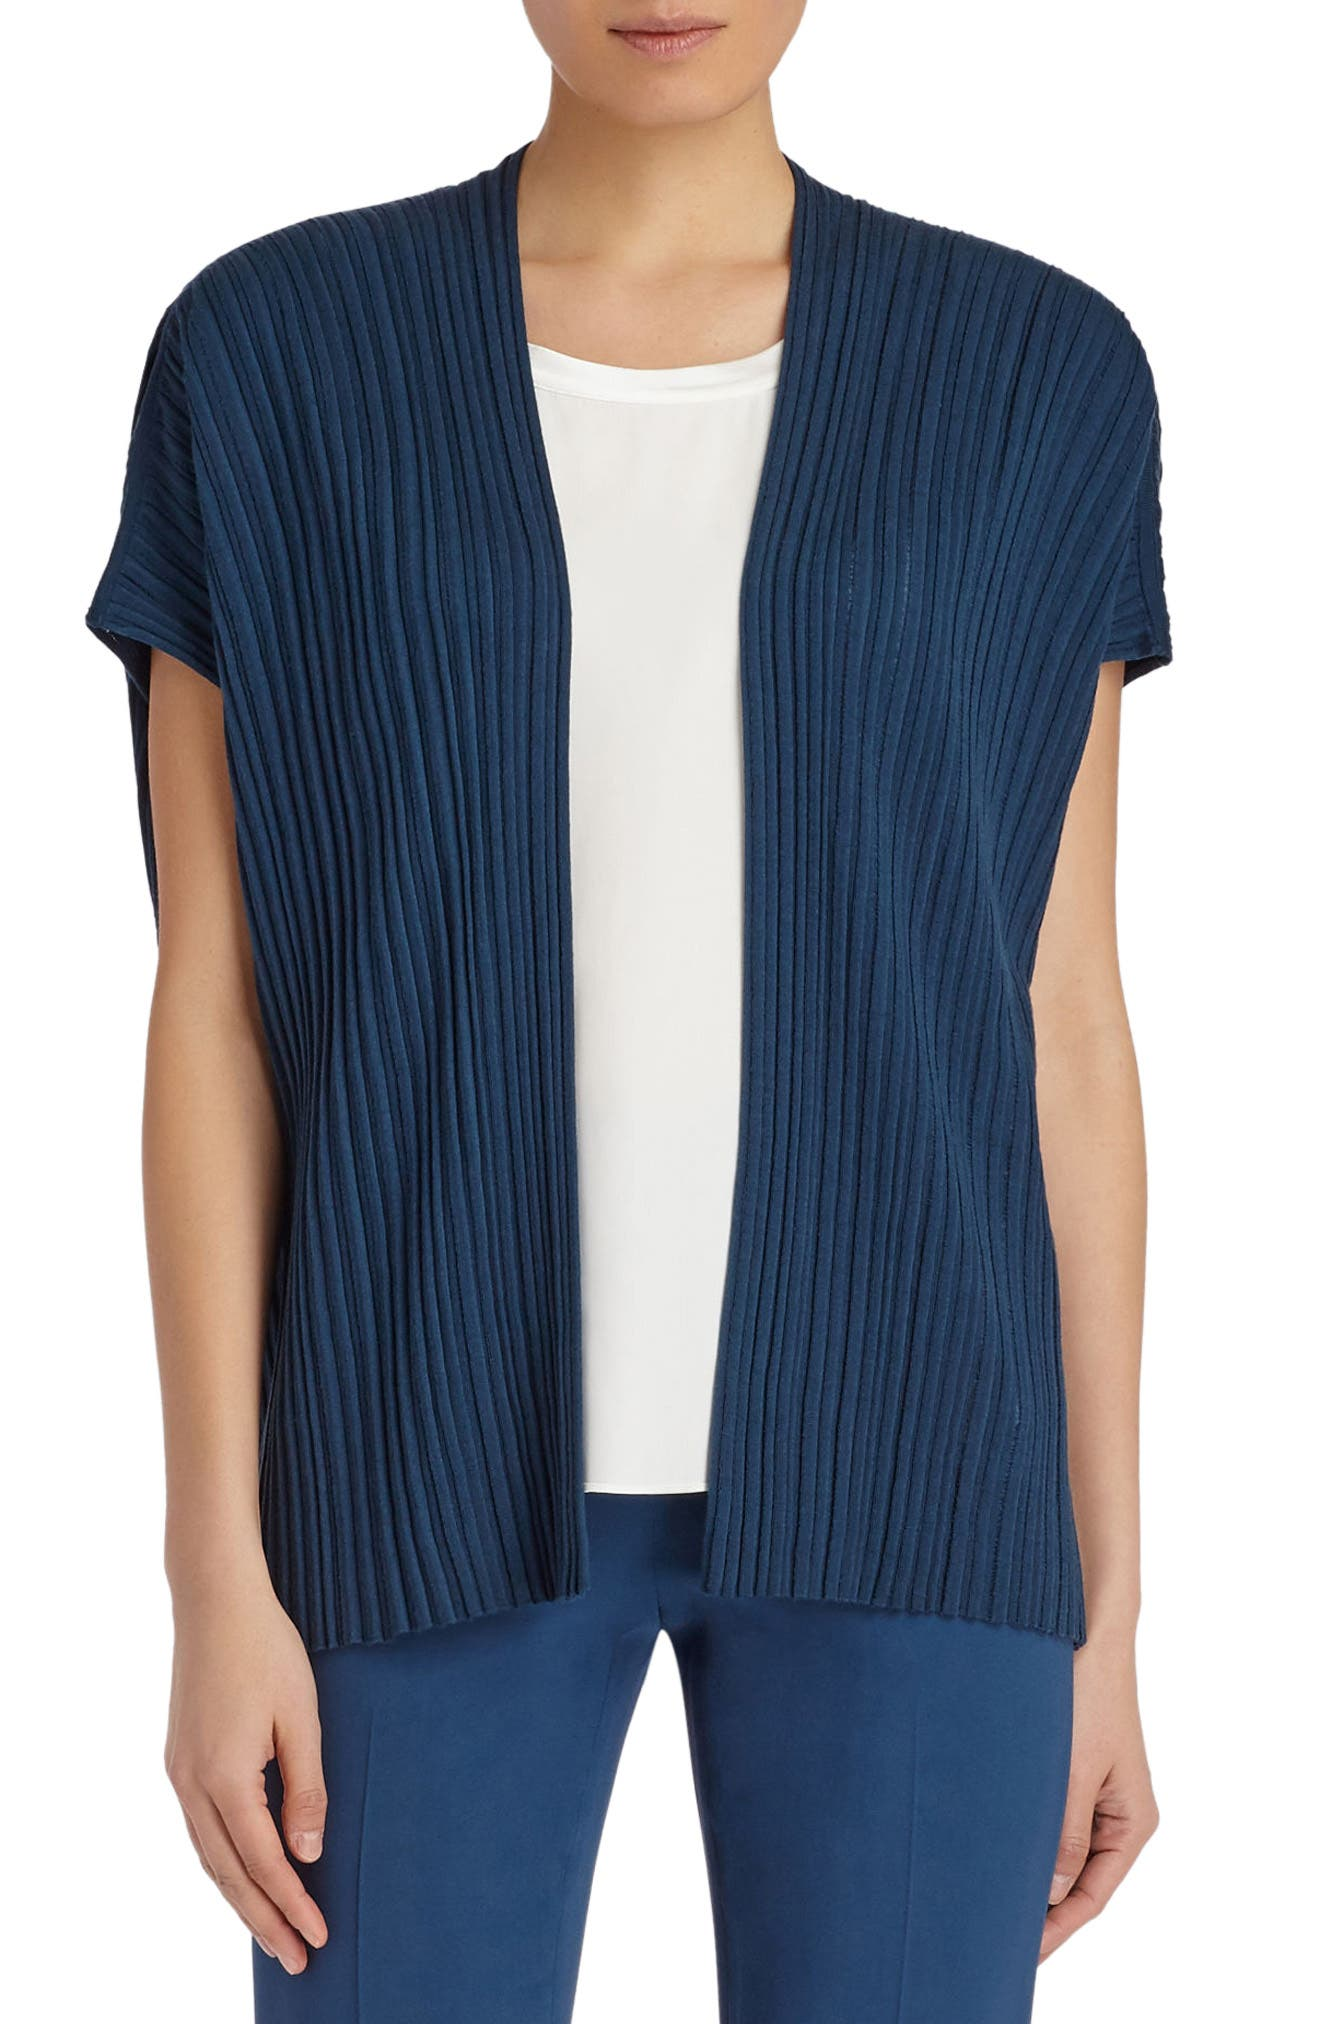 LAFAYETTE 148 NEW YORK Pleated Sweater Vest